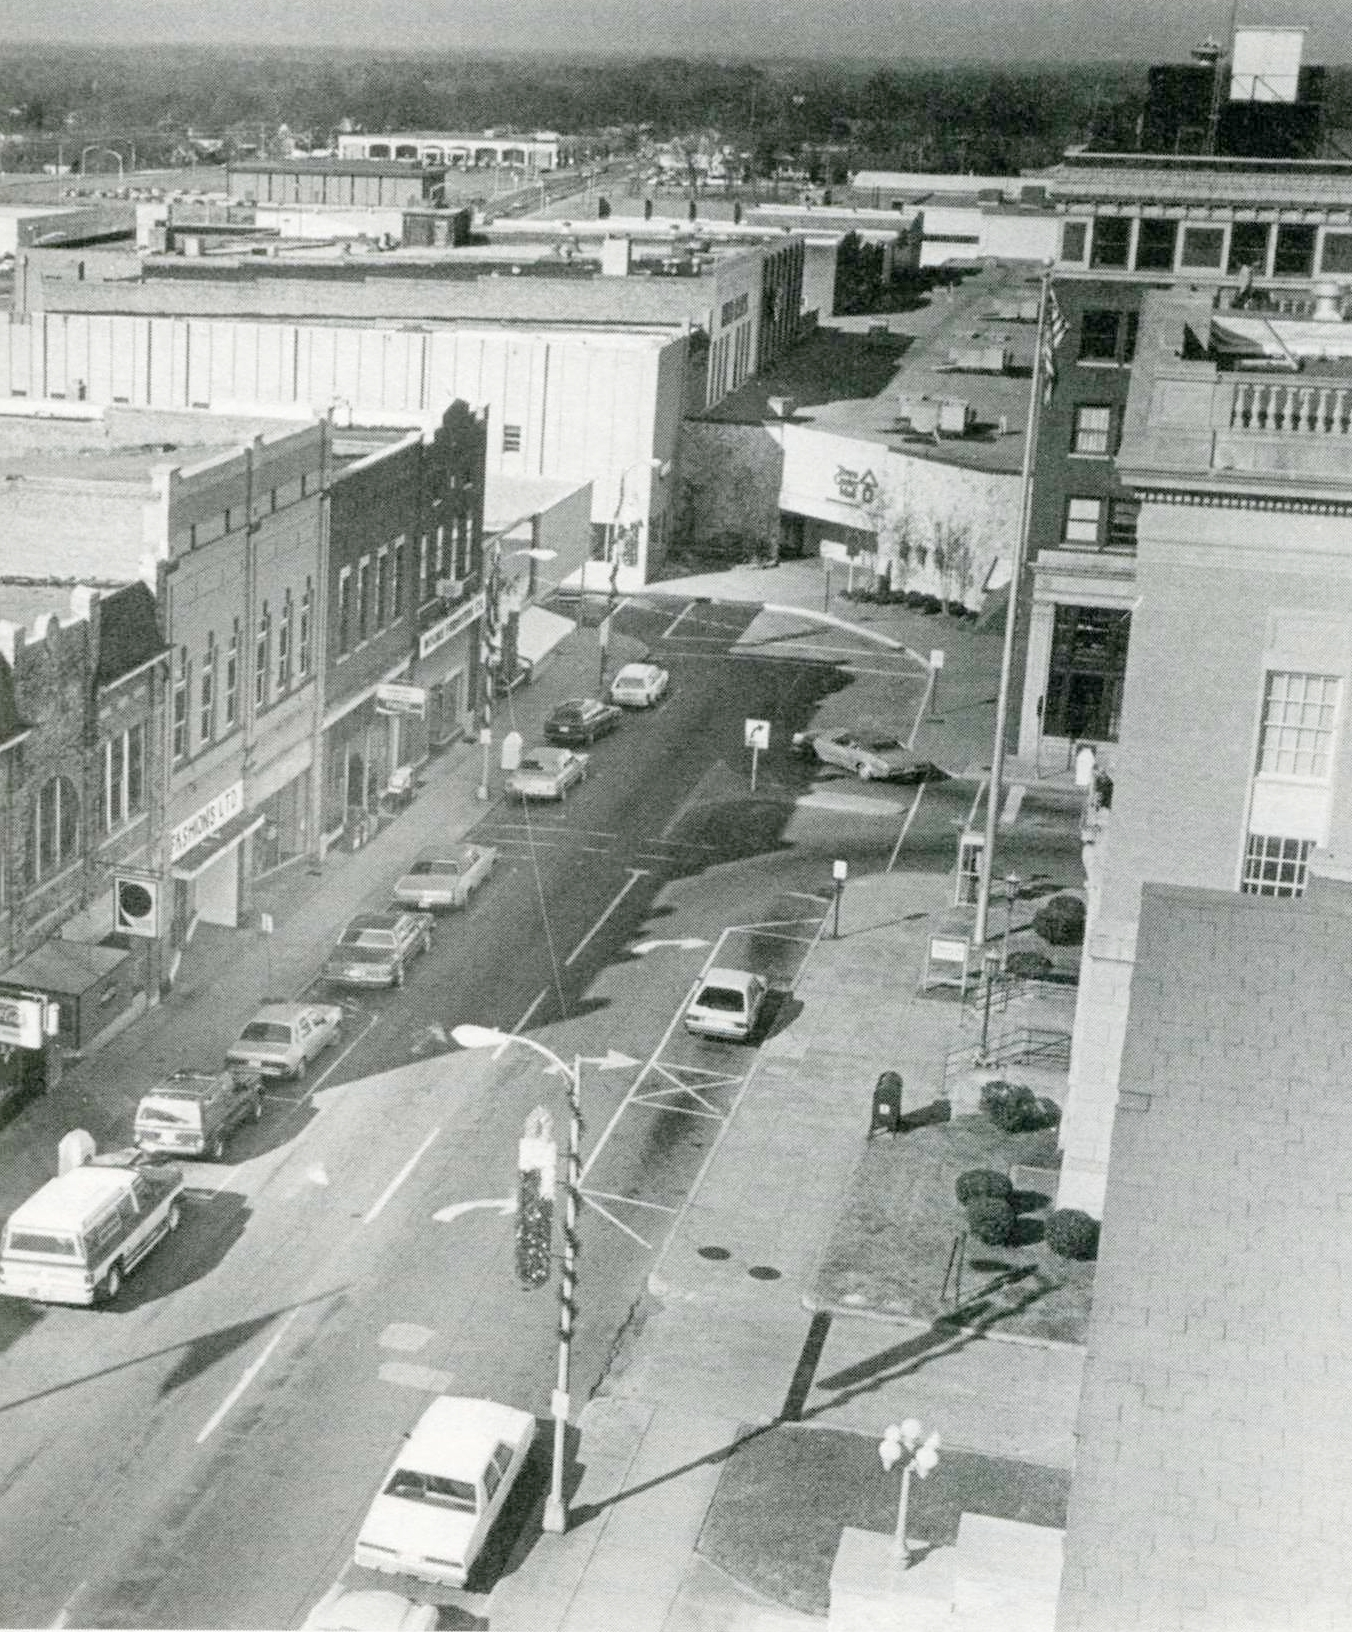 East Main Street during the period the Town Center Mall closed off Main Street.